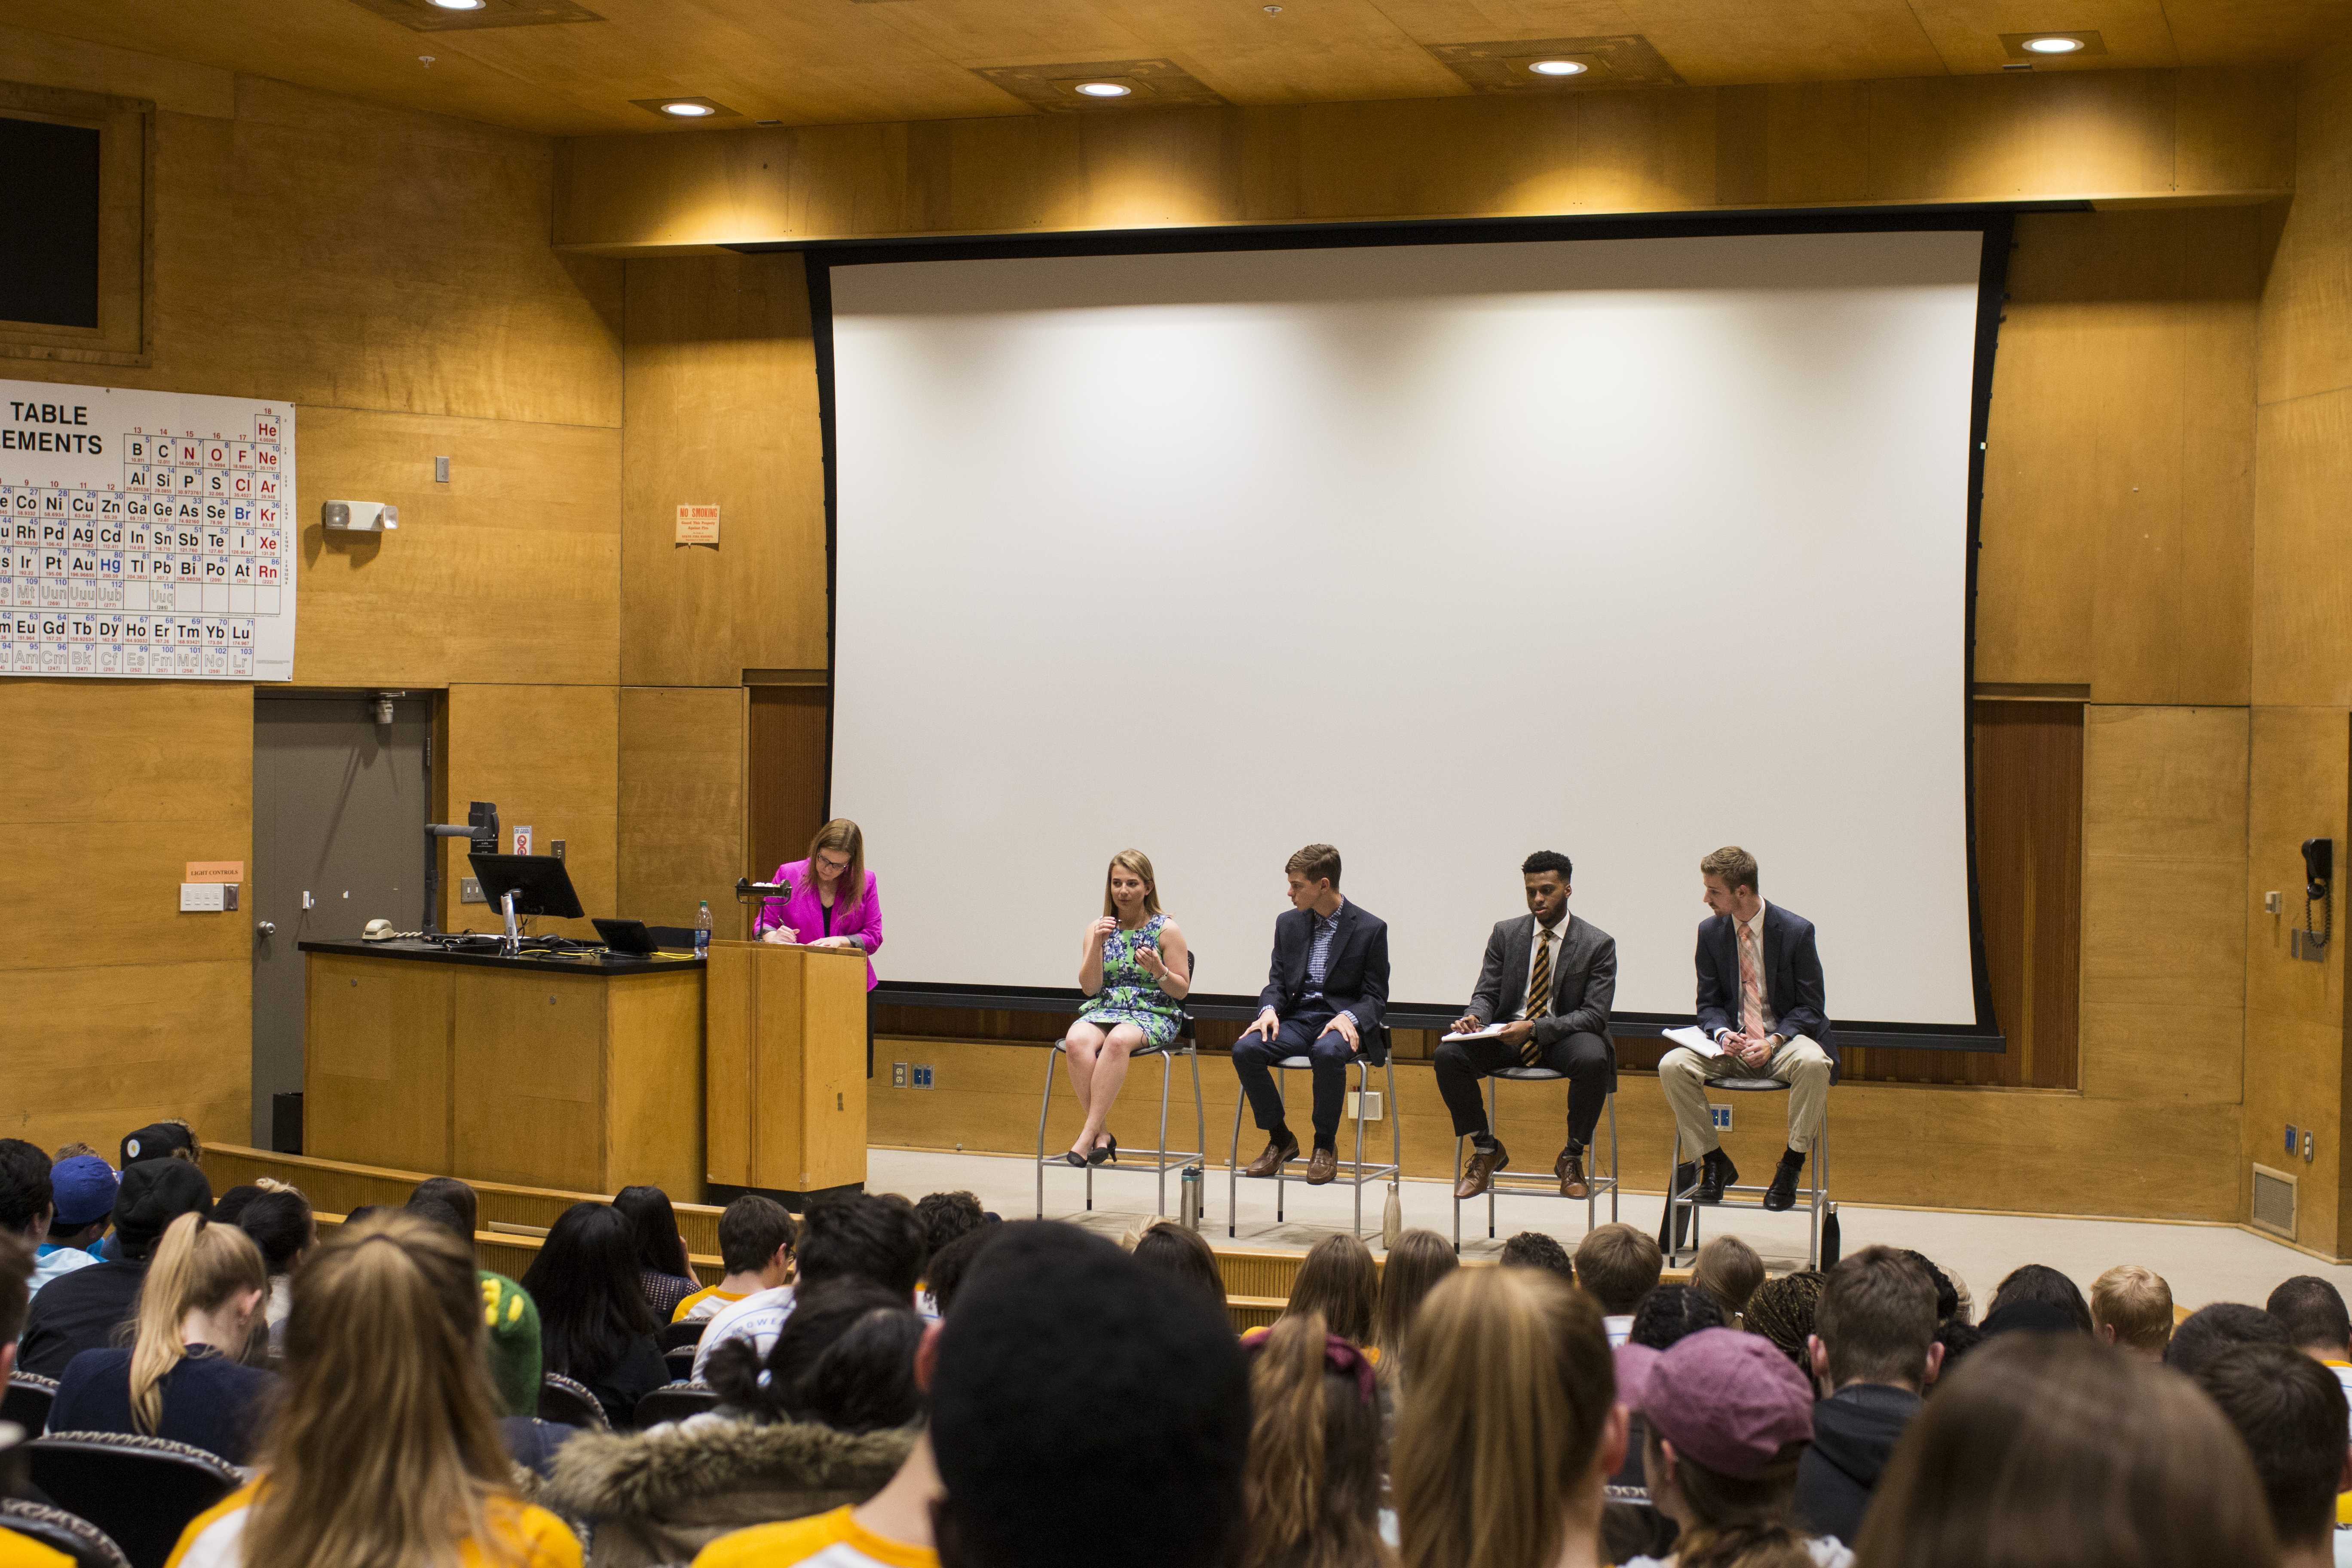 Vice Presidential candidates address questions on campus issues during the UISG VP debate at the Shambaugh Auditorium on March 22, 2018. The candidates discussed their strategies in bettering student life and how to improve university programs. (Katina Zentz/The Daily Iowan)